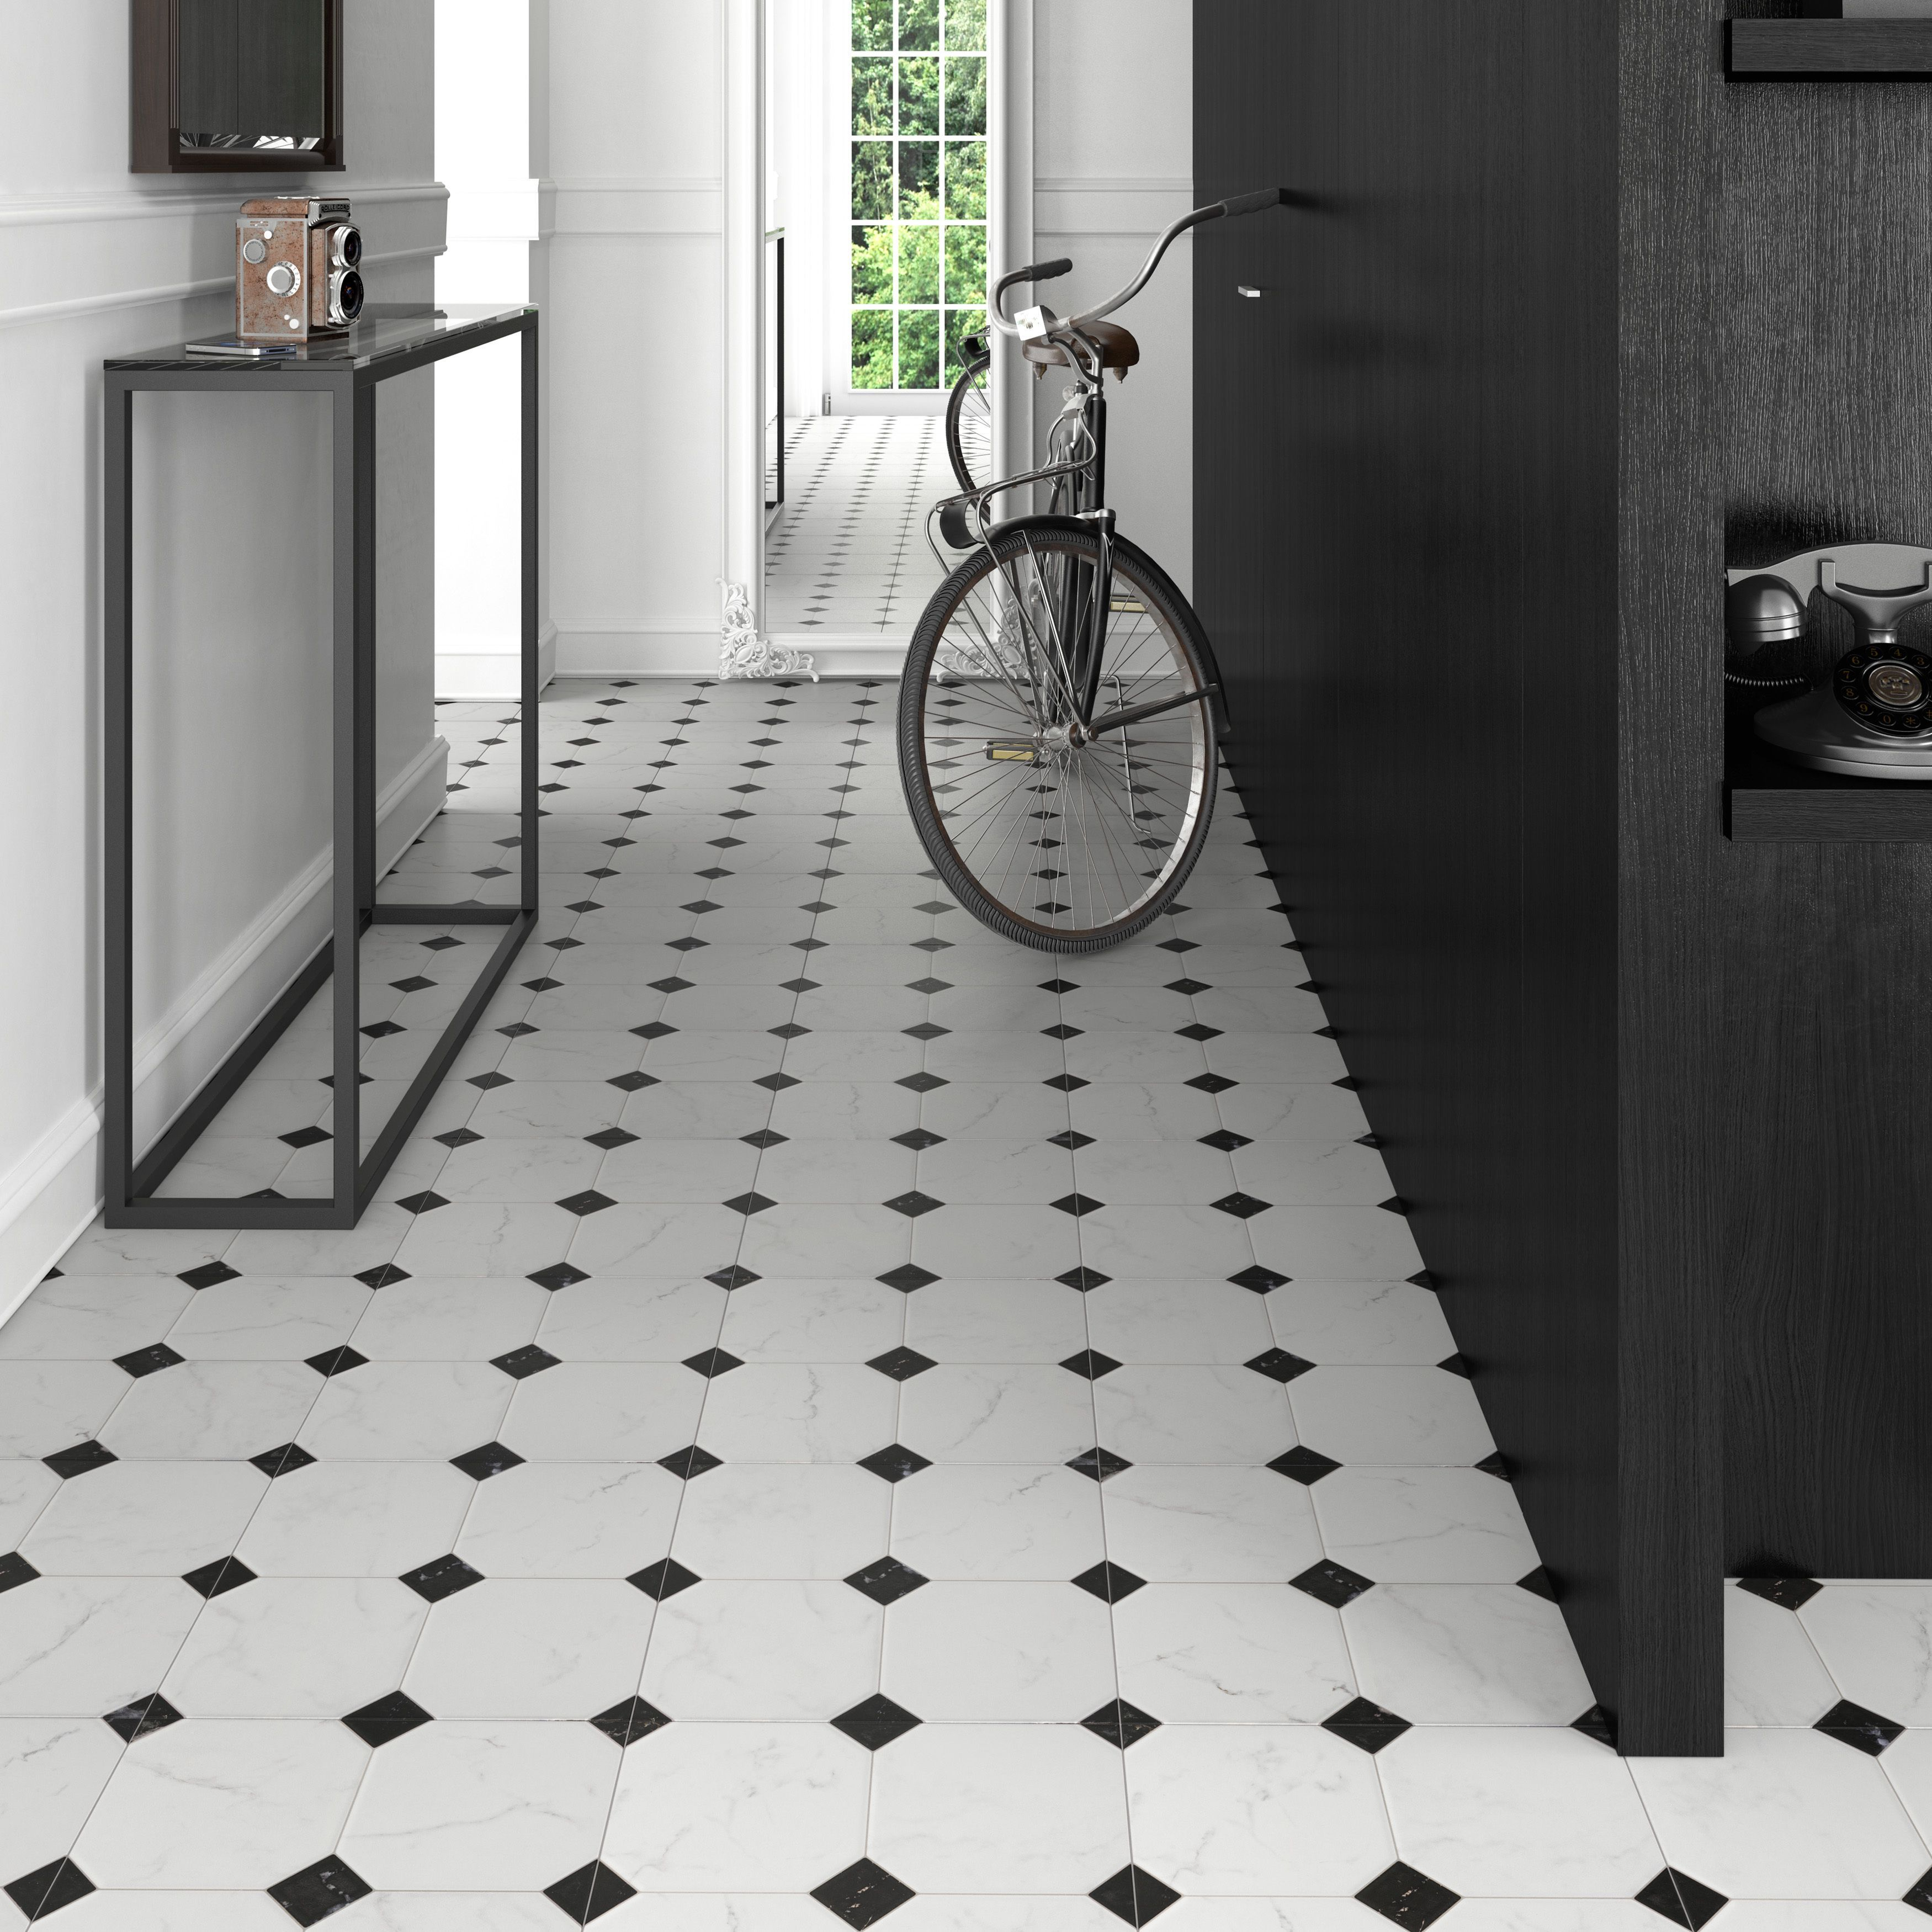 Can Ceramic Wall Tile Be Used On Floor